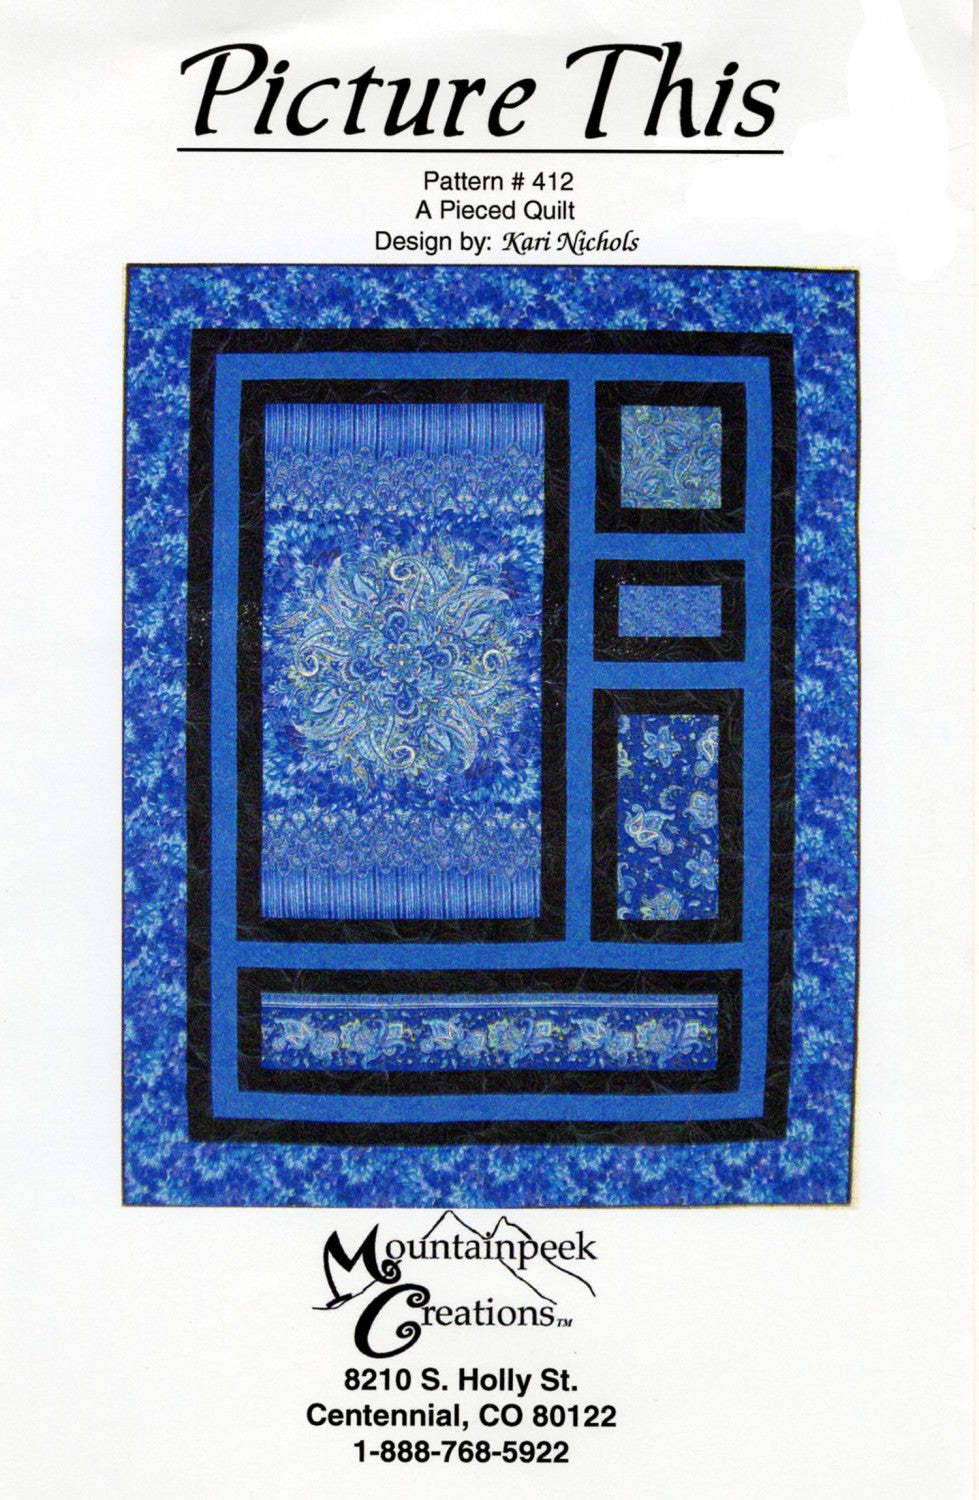 Mountainpeek Creations: Picture This Panel Quilt Pattern